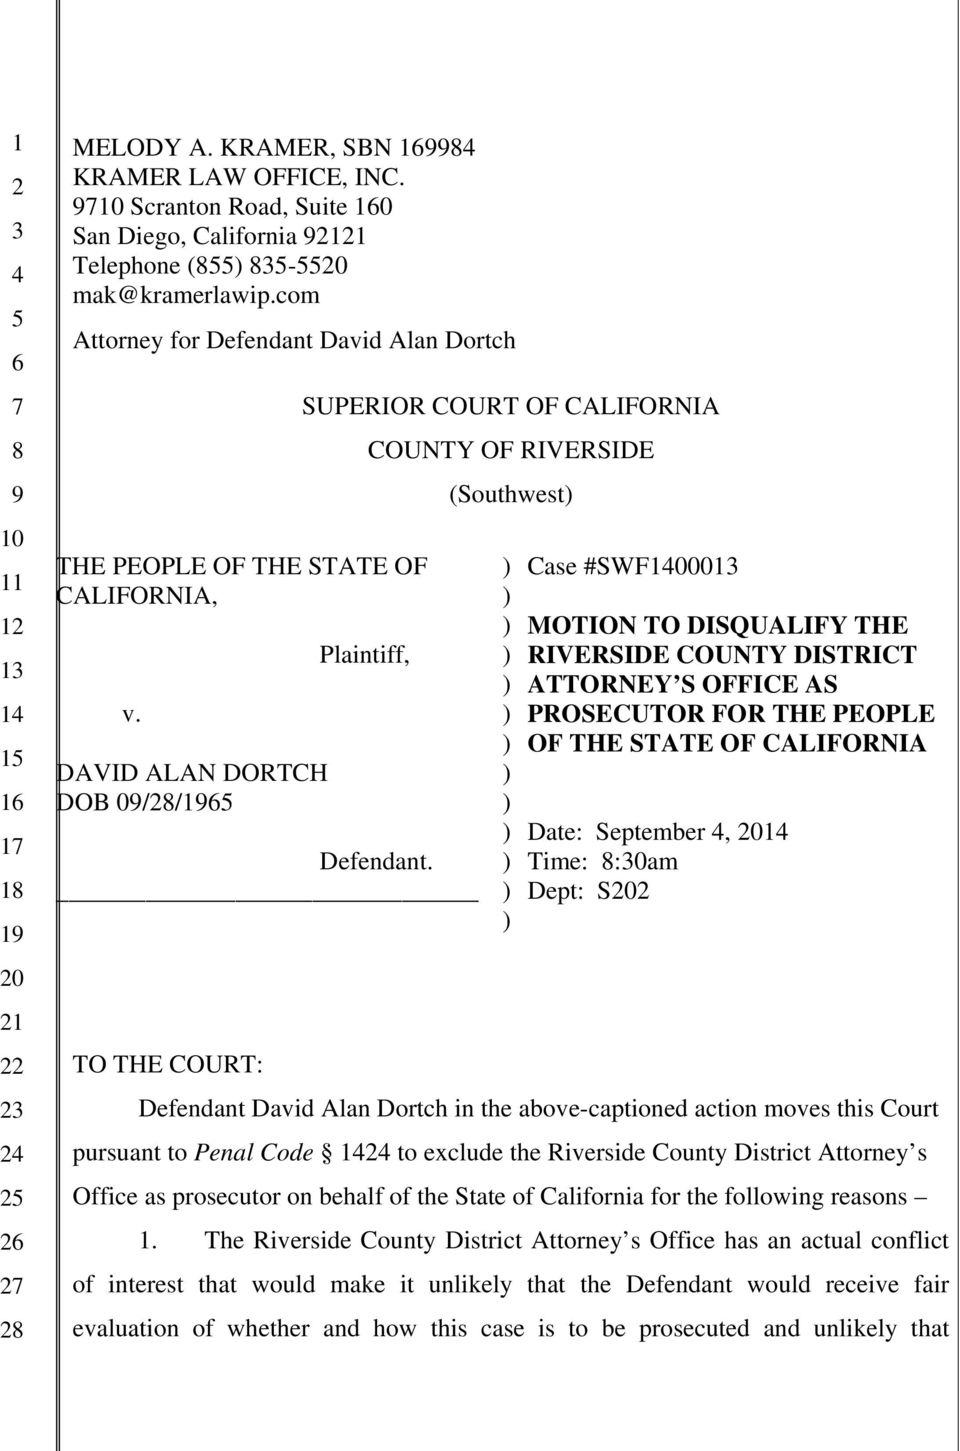 ATTORNEY S OFFICE AS PROSECUTOR FOR THE PEOPLE OF THE STATE OF CALIFORNIA Date: September, 1 Time: :0am Dept: S Defendant David Alan Dortch in the above-captioned action moves this Court pursuant to